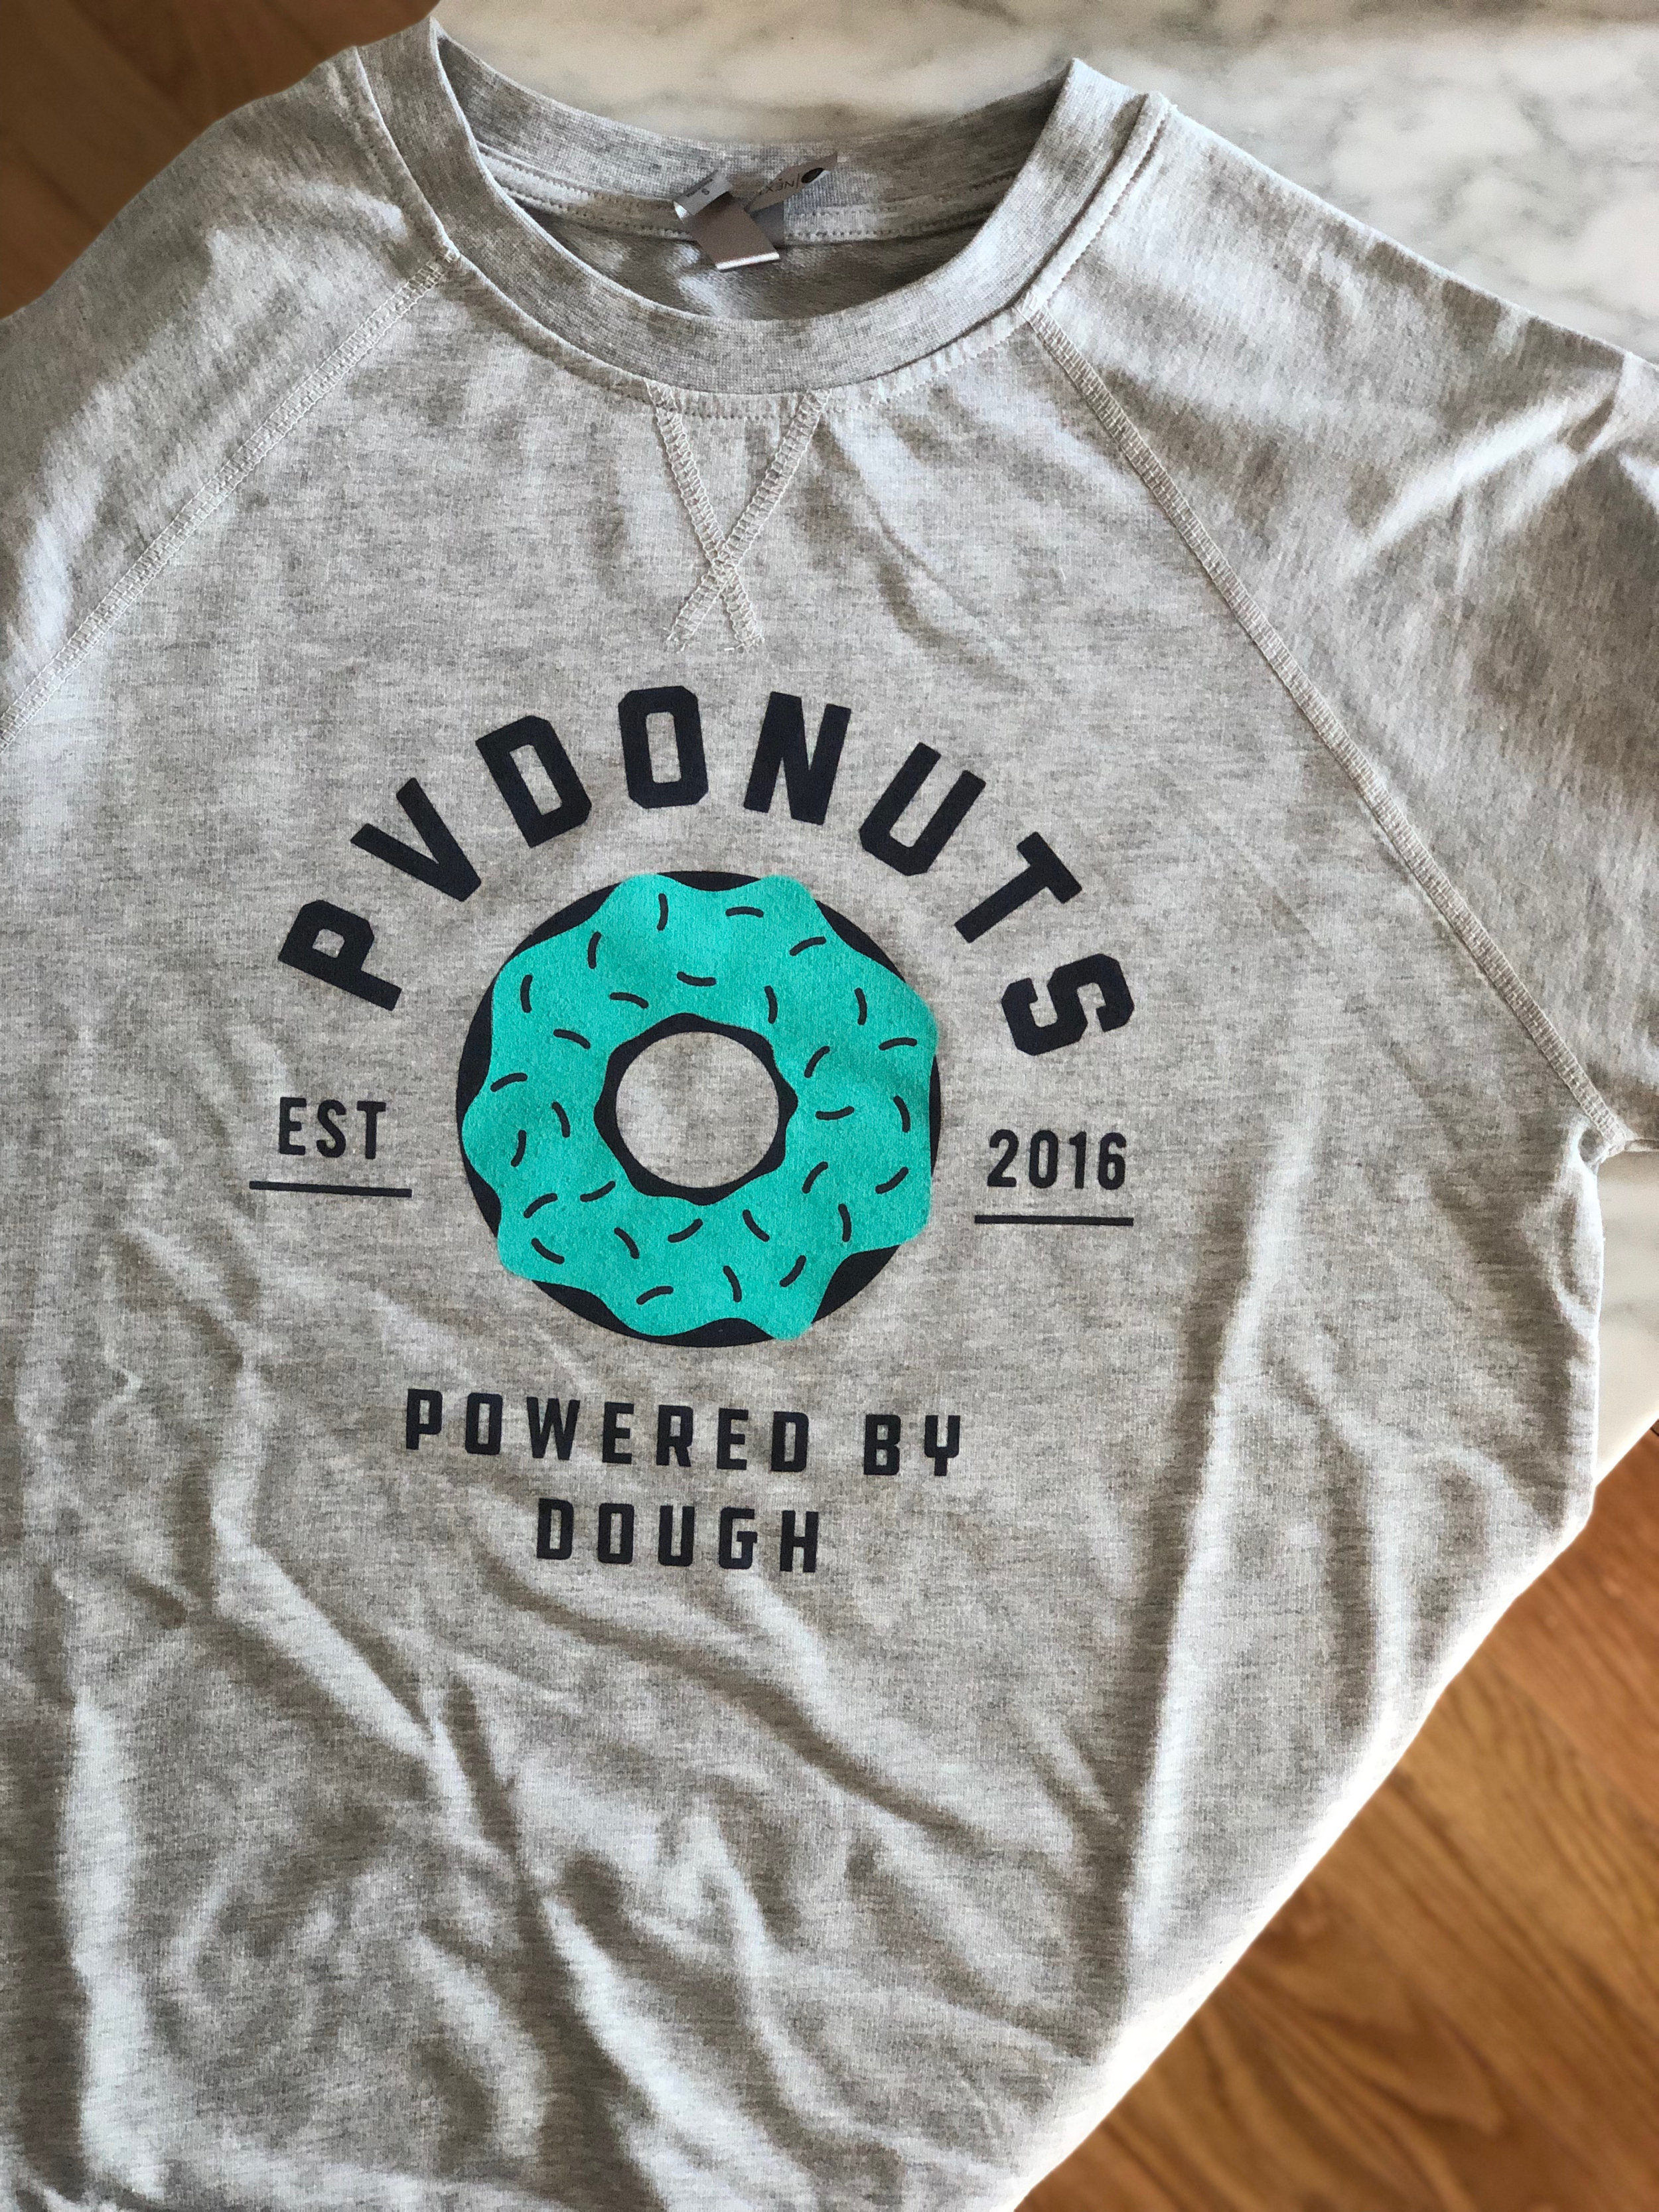 Powered By Dough Crew Neck - $27    Available Size(s) - Small - XL (unisex)